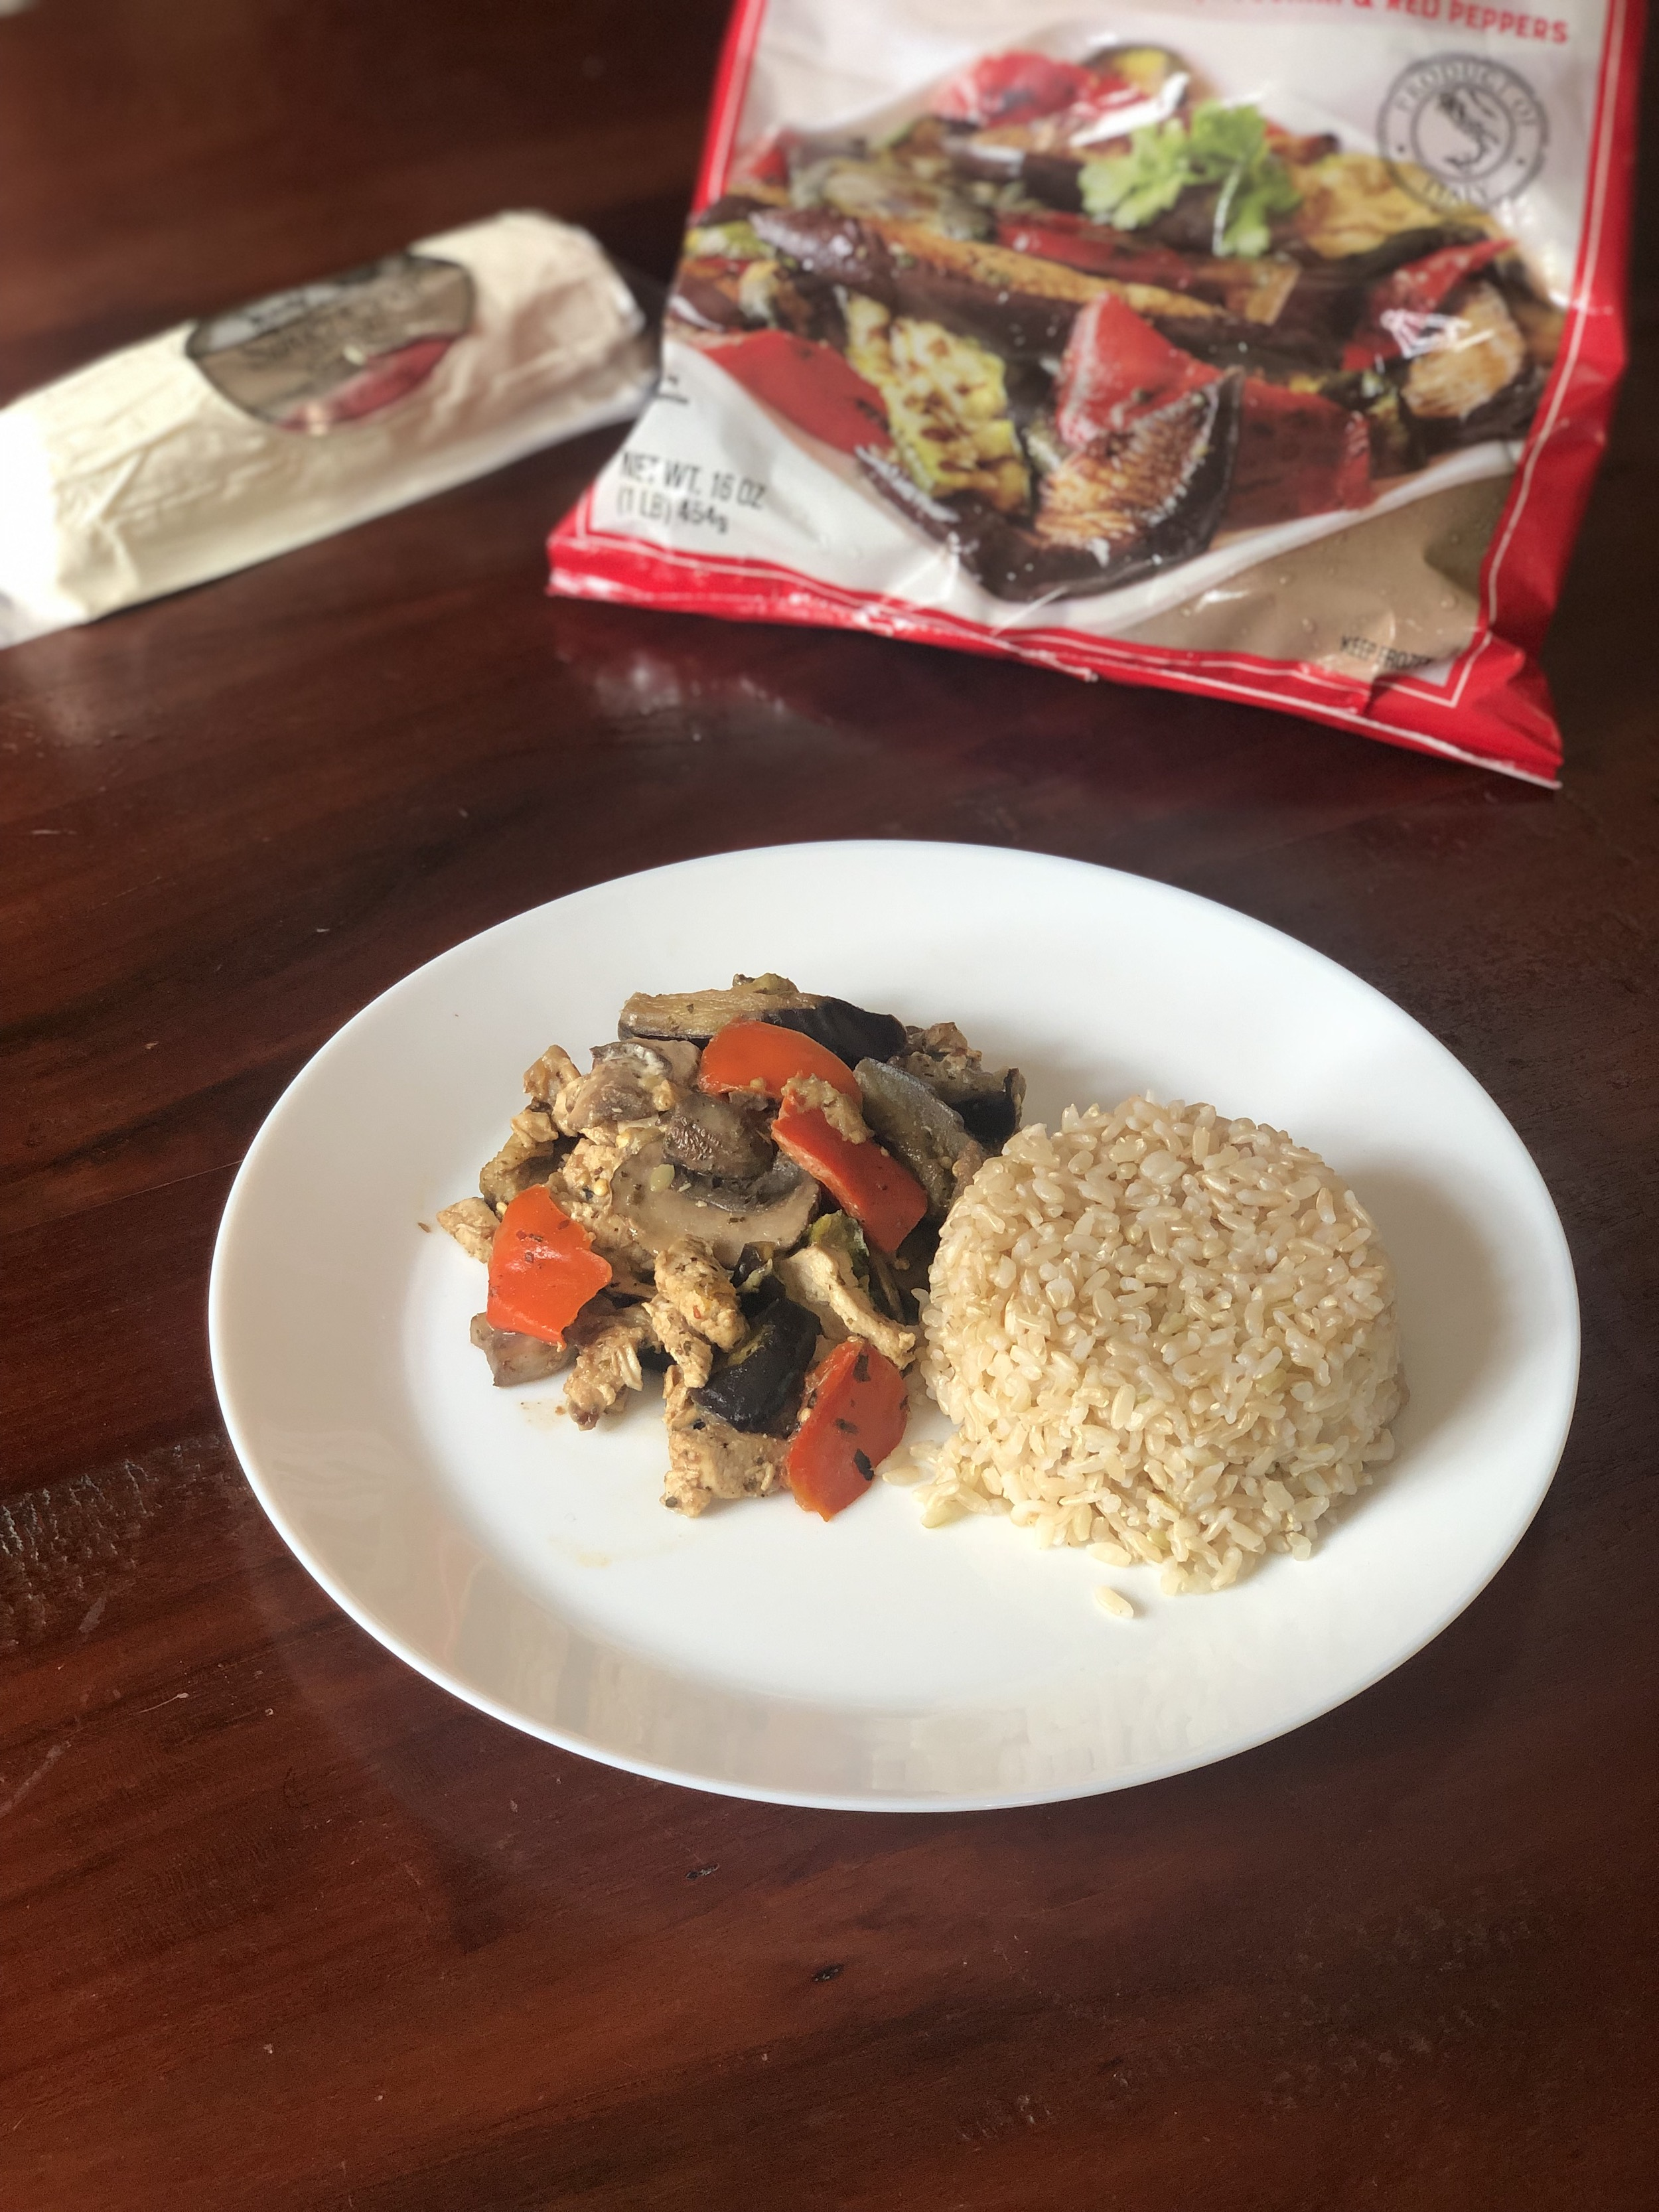 Healthy Eating at Trader Joes | Creamy Chicken and Vegetable Stir-Fry | Recipe Ingredients